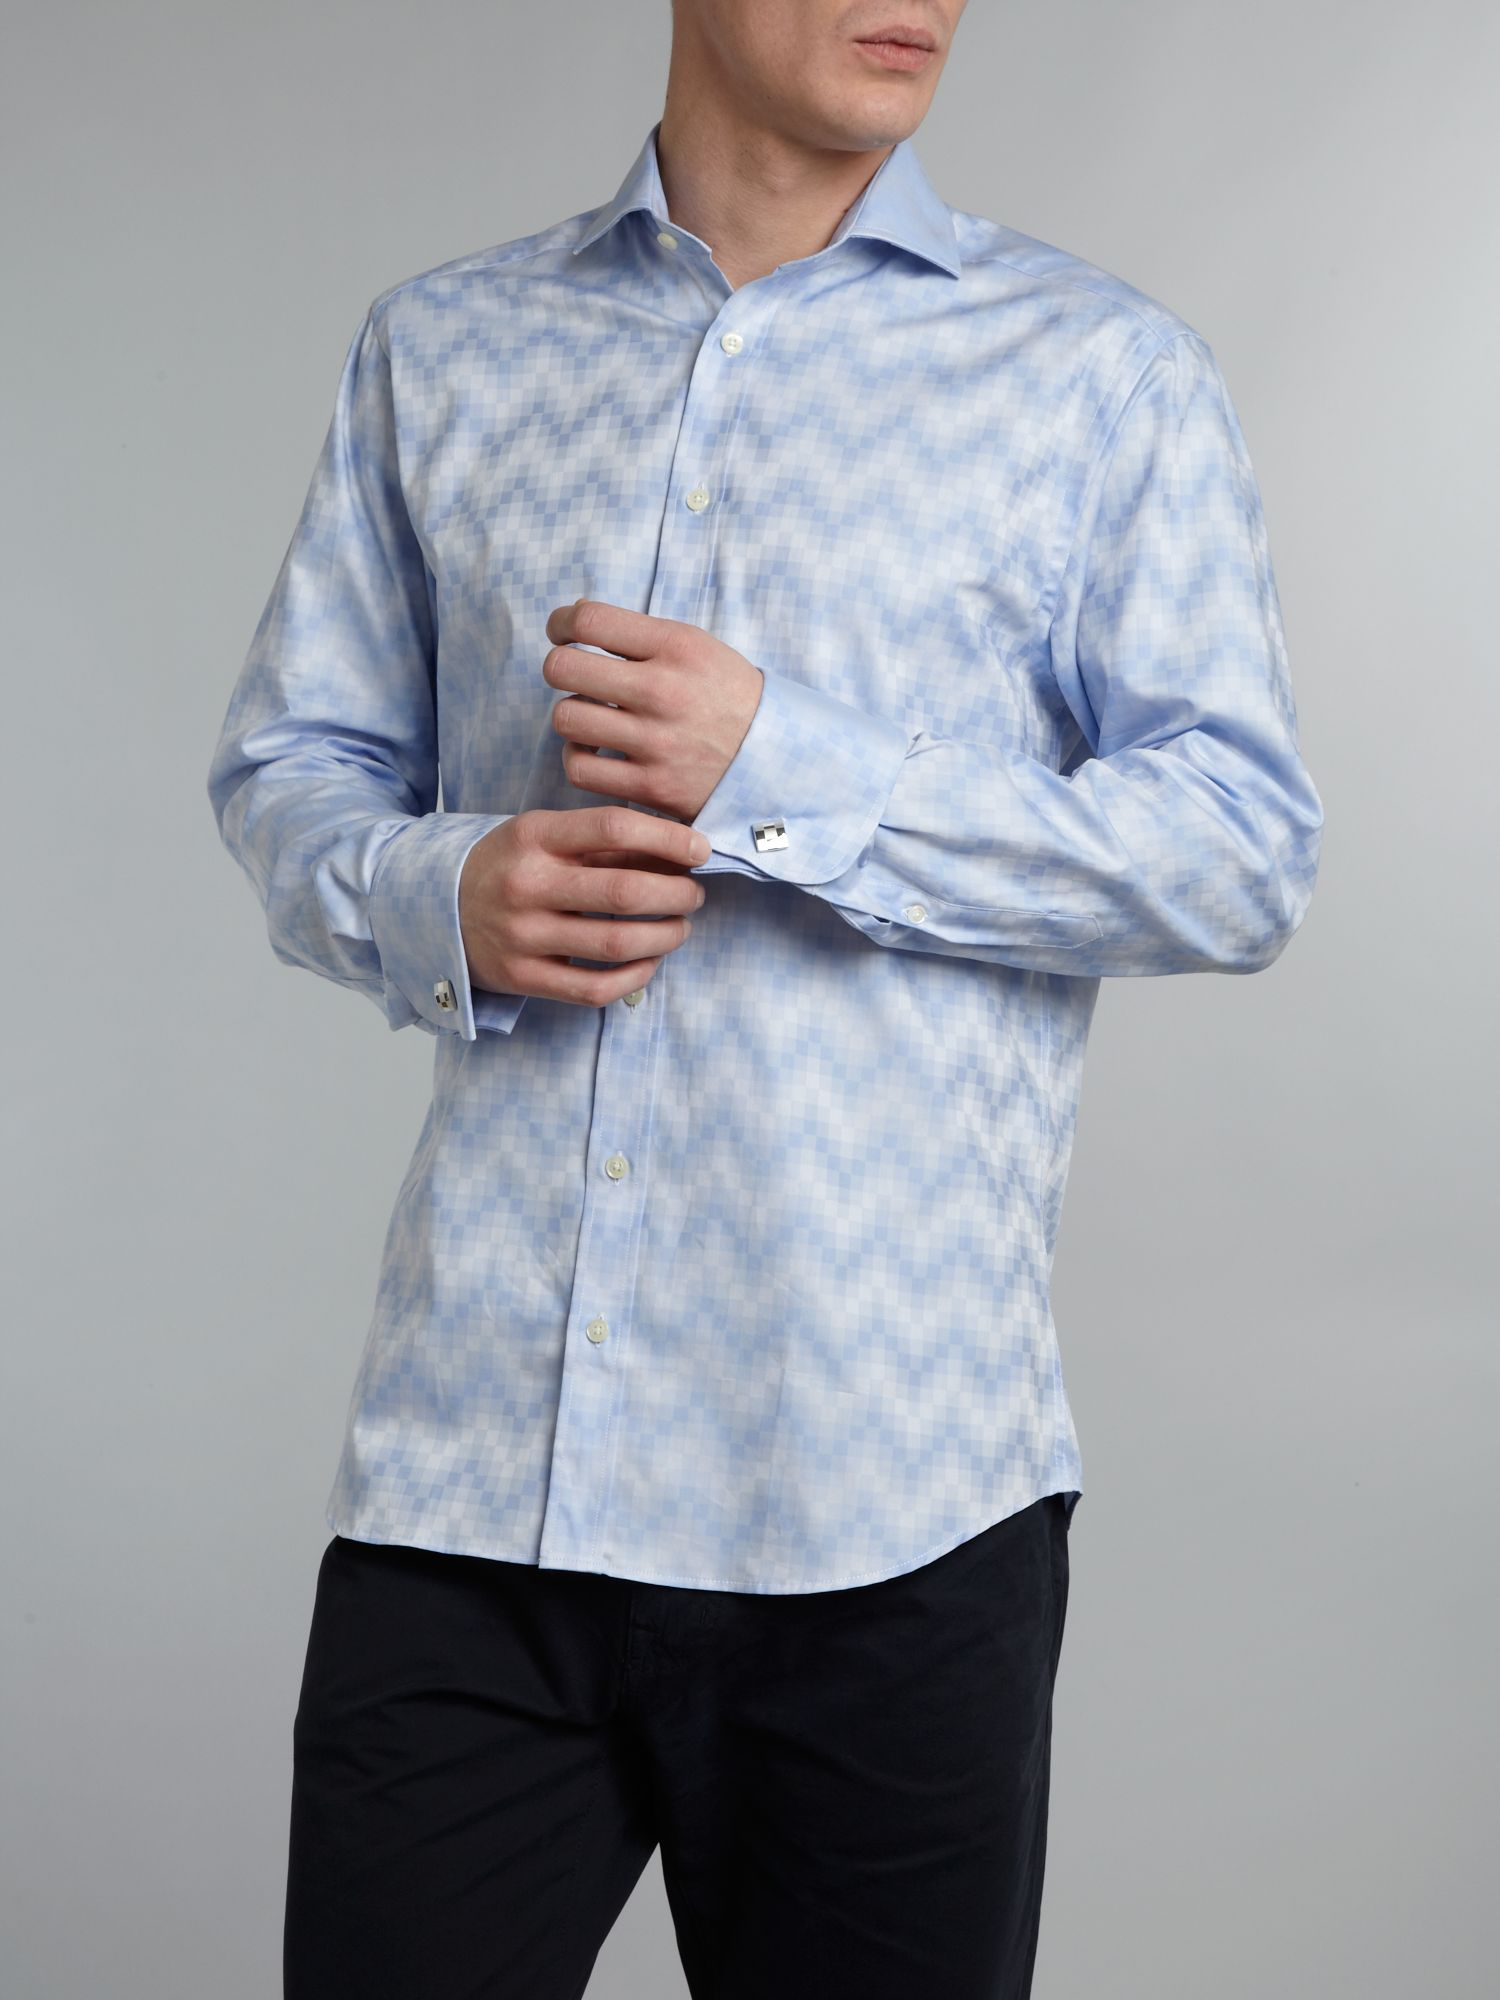 Twill squares cutaway collar double cuff shirt